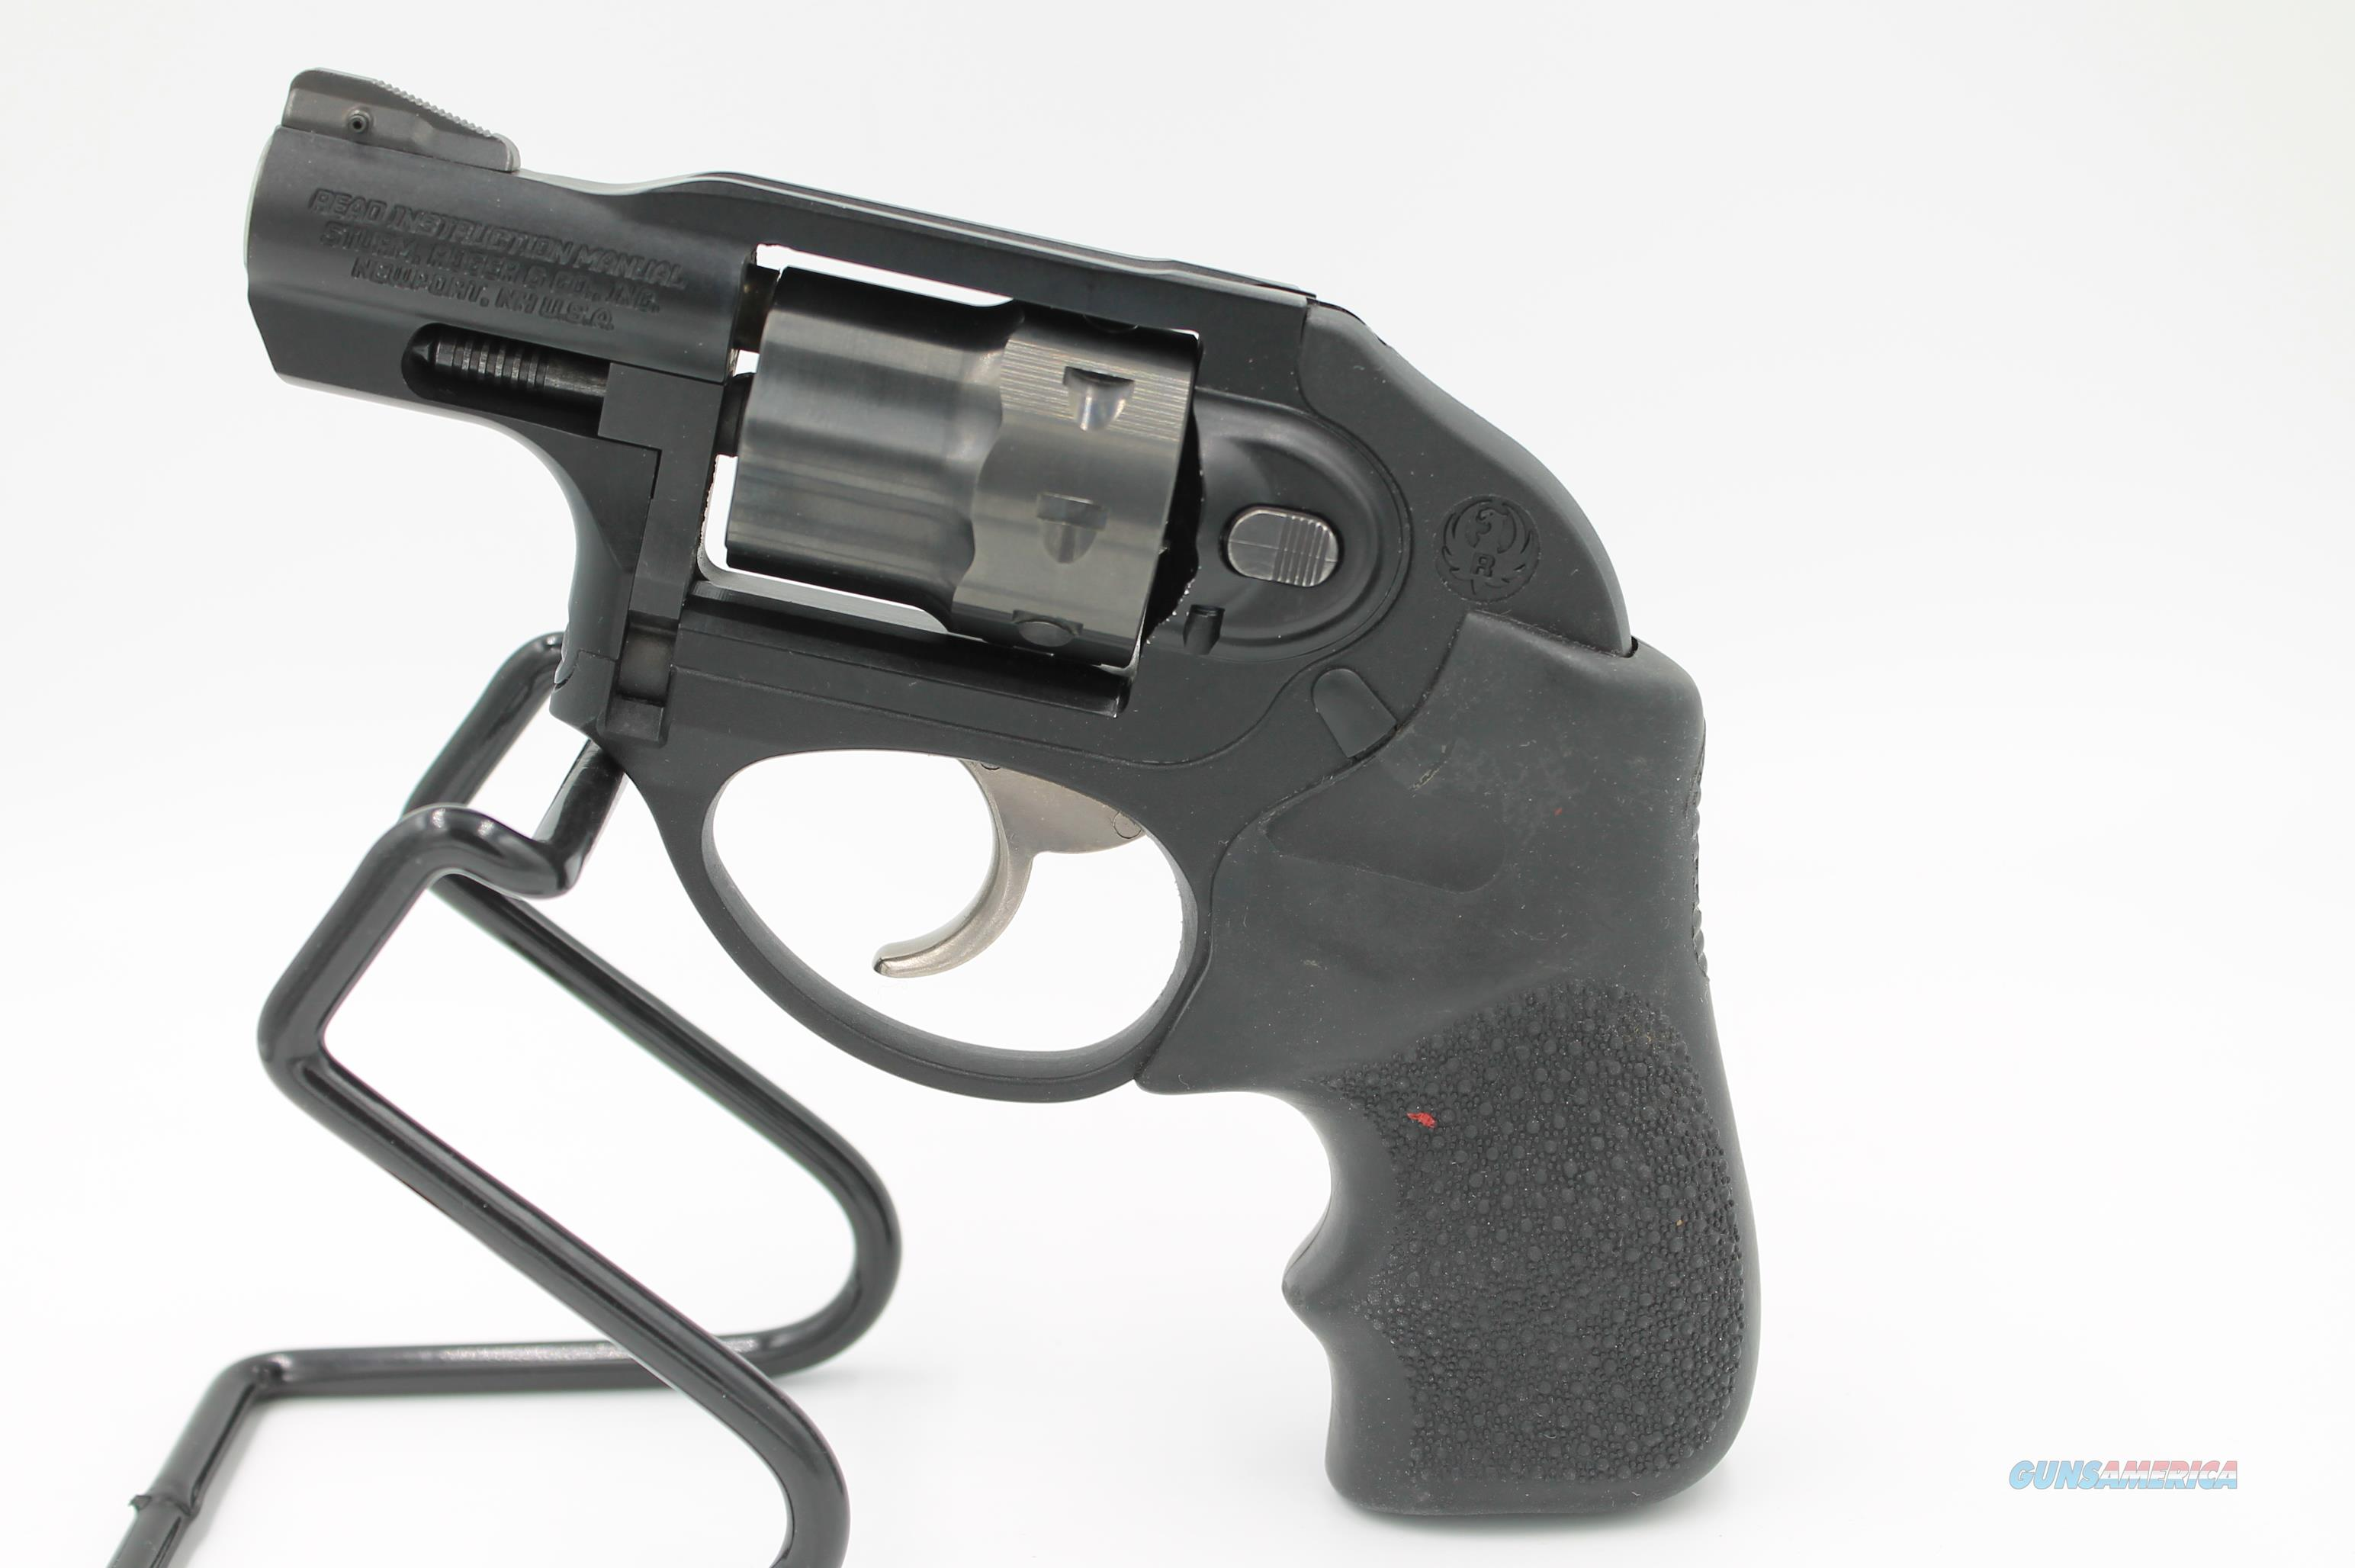 Ruger LCR 5410 Double Action Revolver .22 LR   Guns > Pistols > Ruger Double Action Revolver > LCR